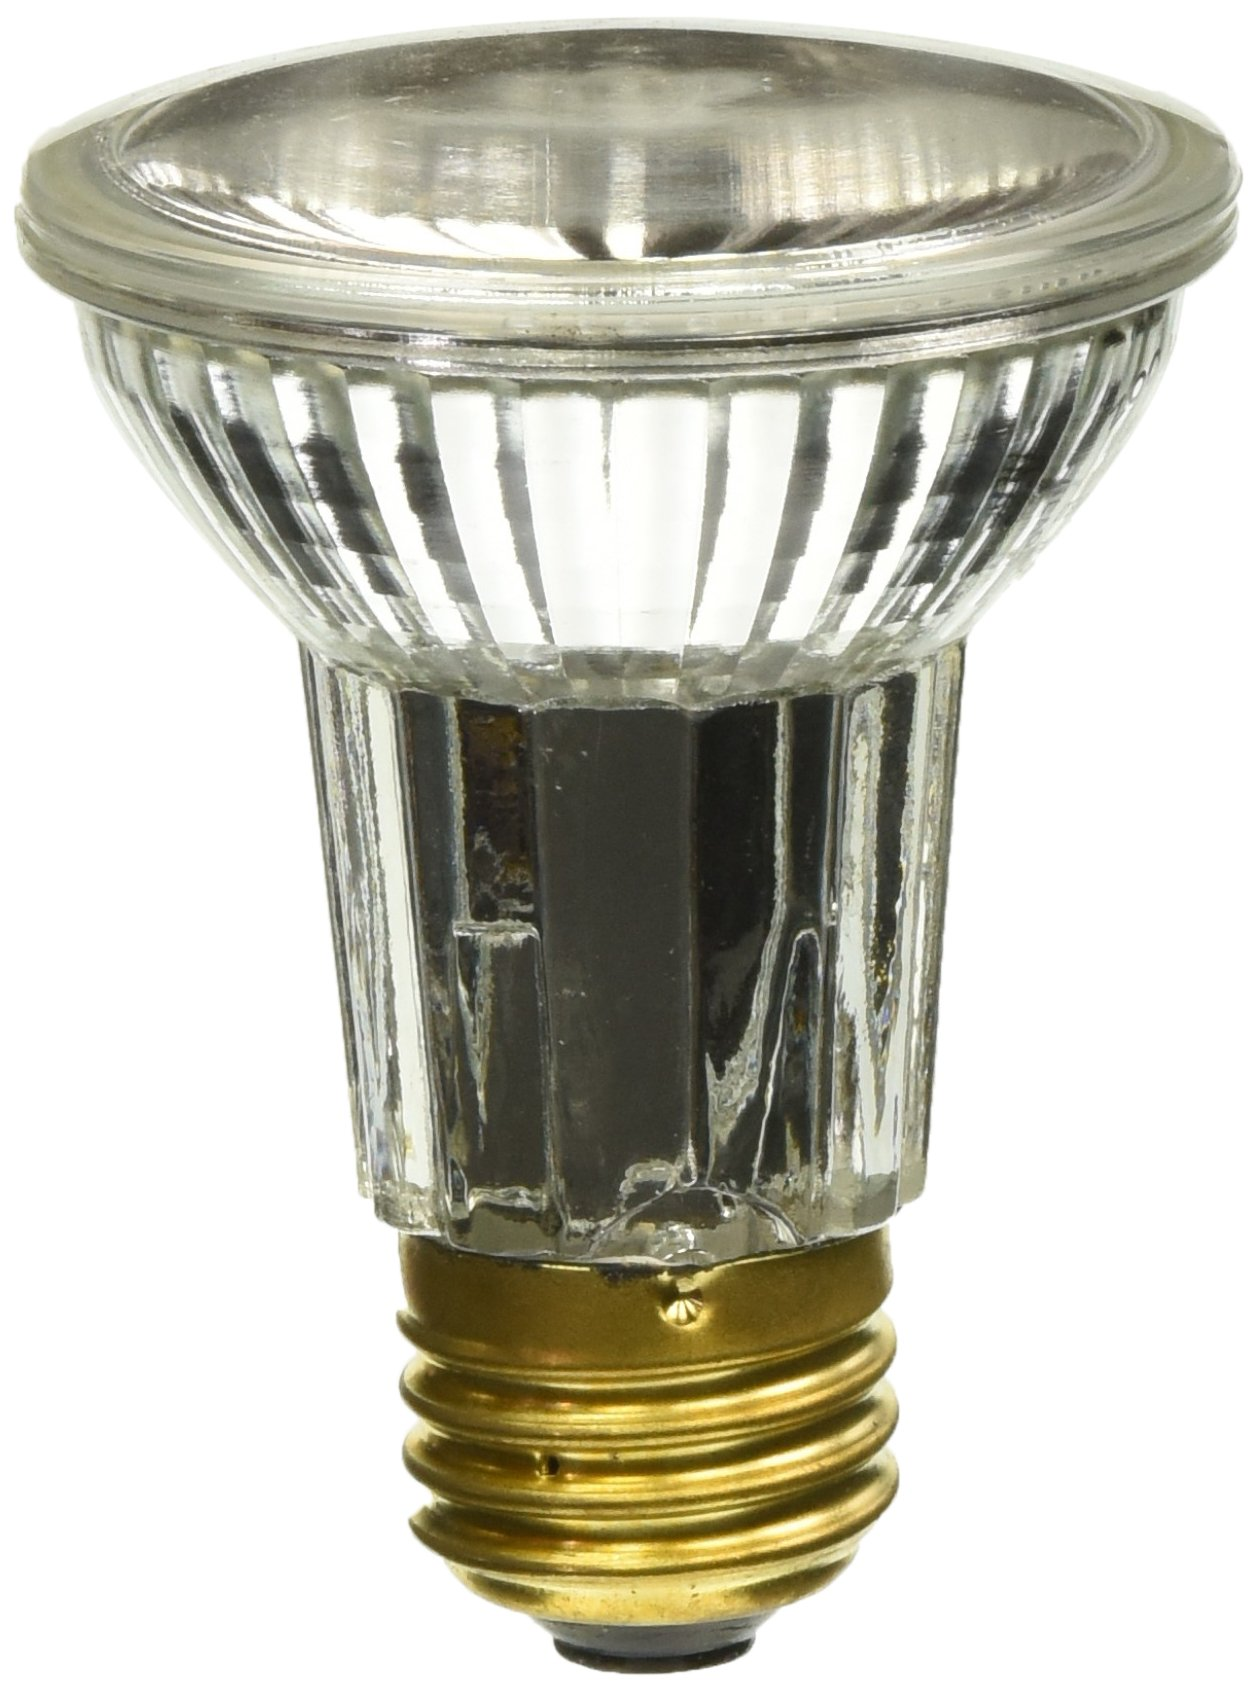 Zoo Med Repti Tuff Splashproof Halogen Lamps 50 Watts (3 Pack)